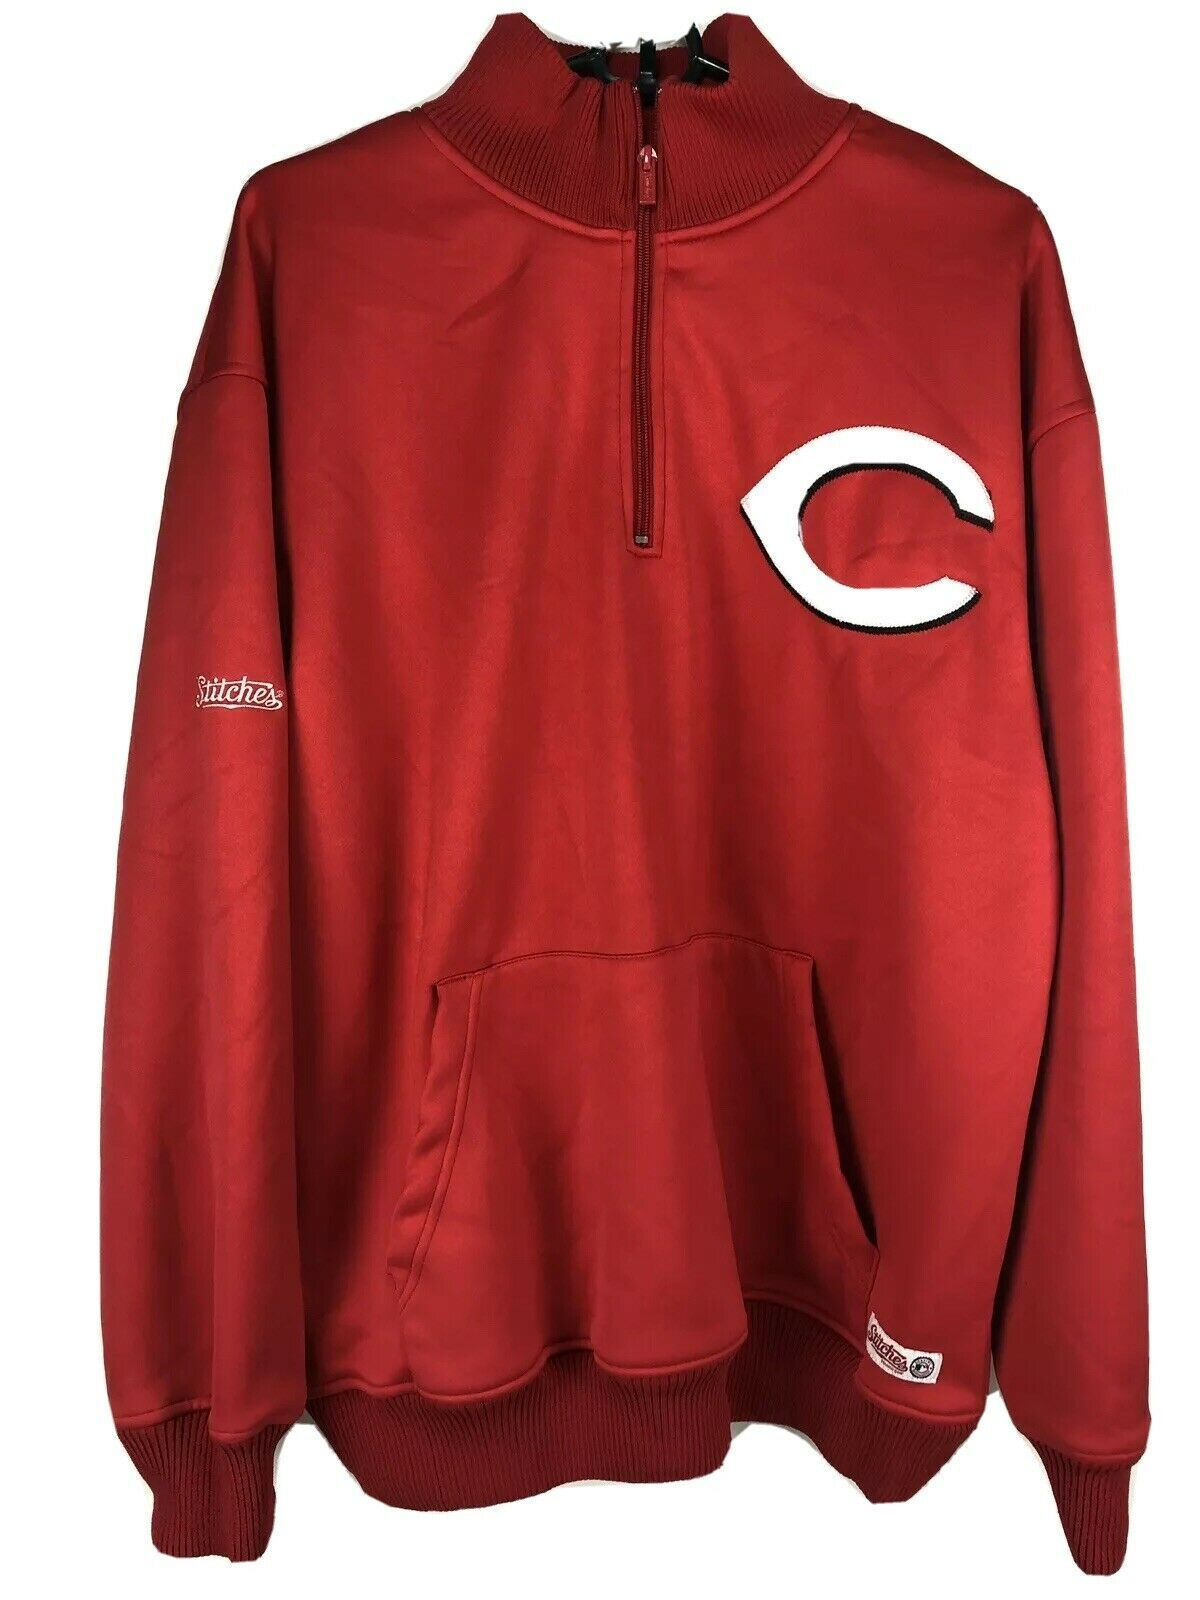 Primary image for Men's Cincinnati Reds MLB Red Quarter Zip Fleece Sweatshirt Size L Stitches